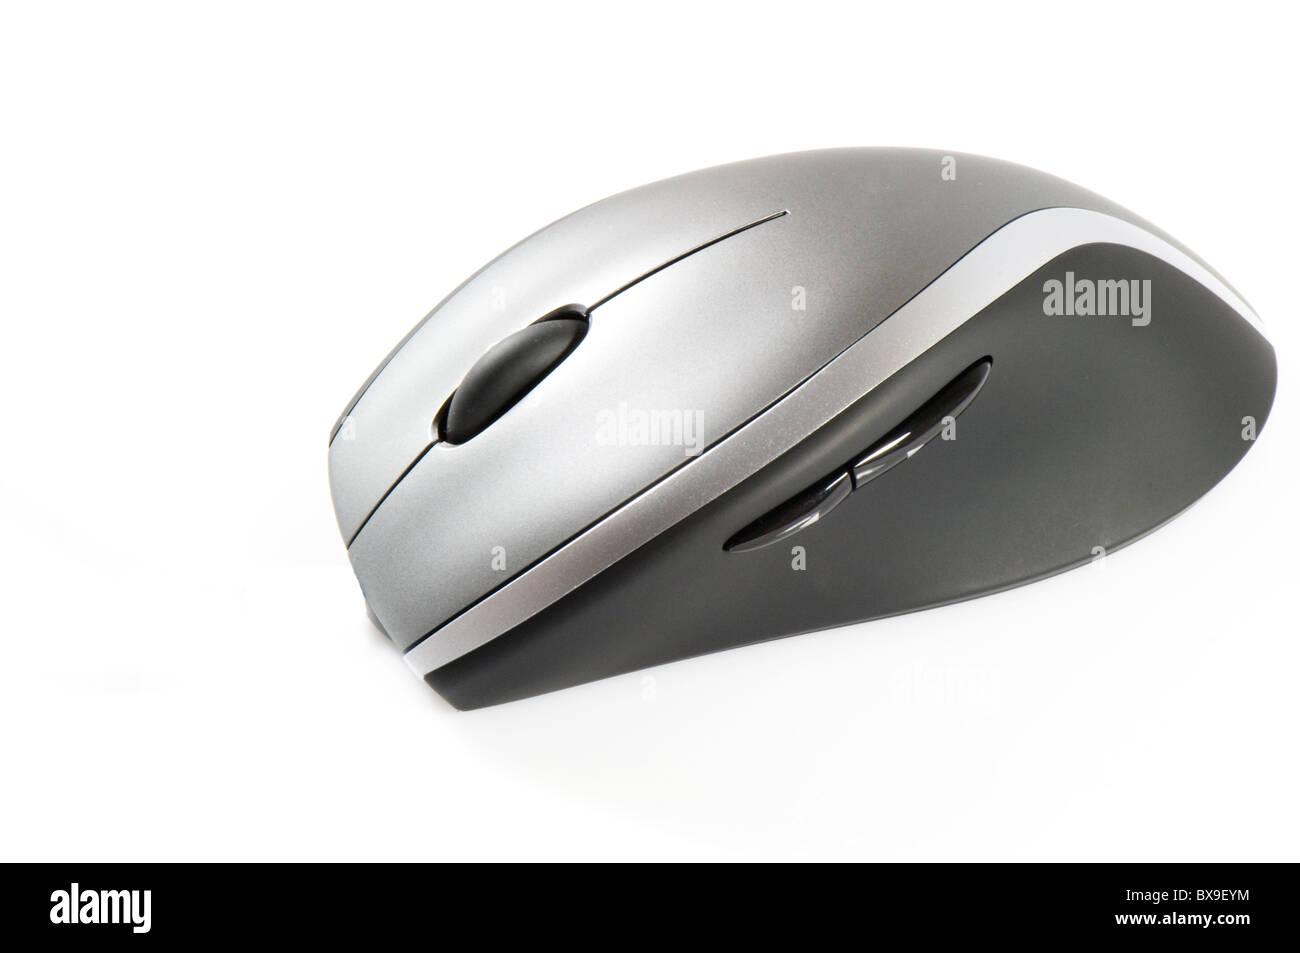 Computer mouse on white background - Stock Image